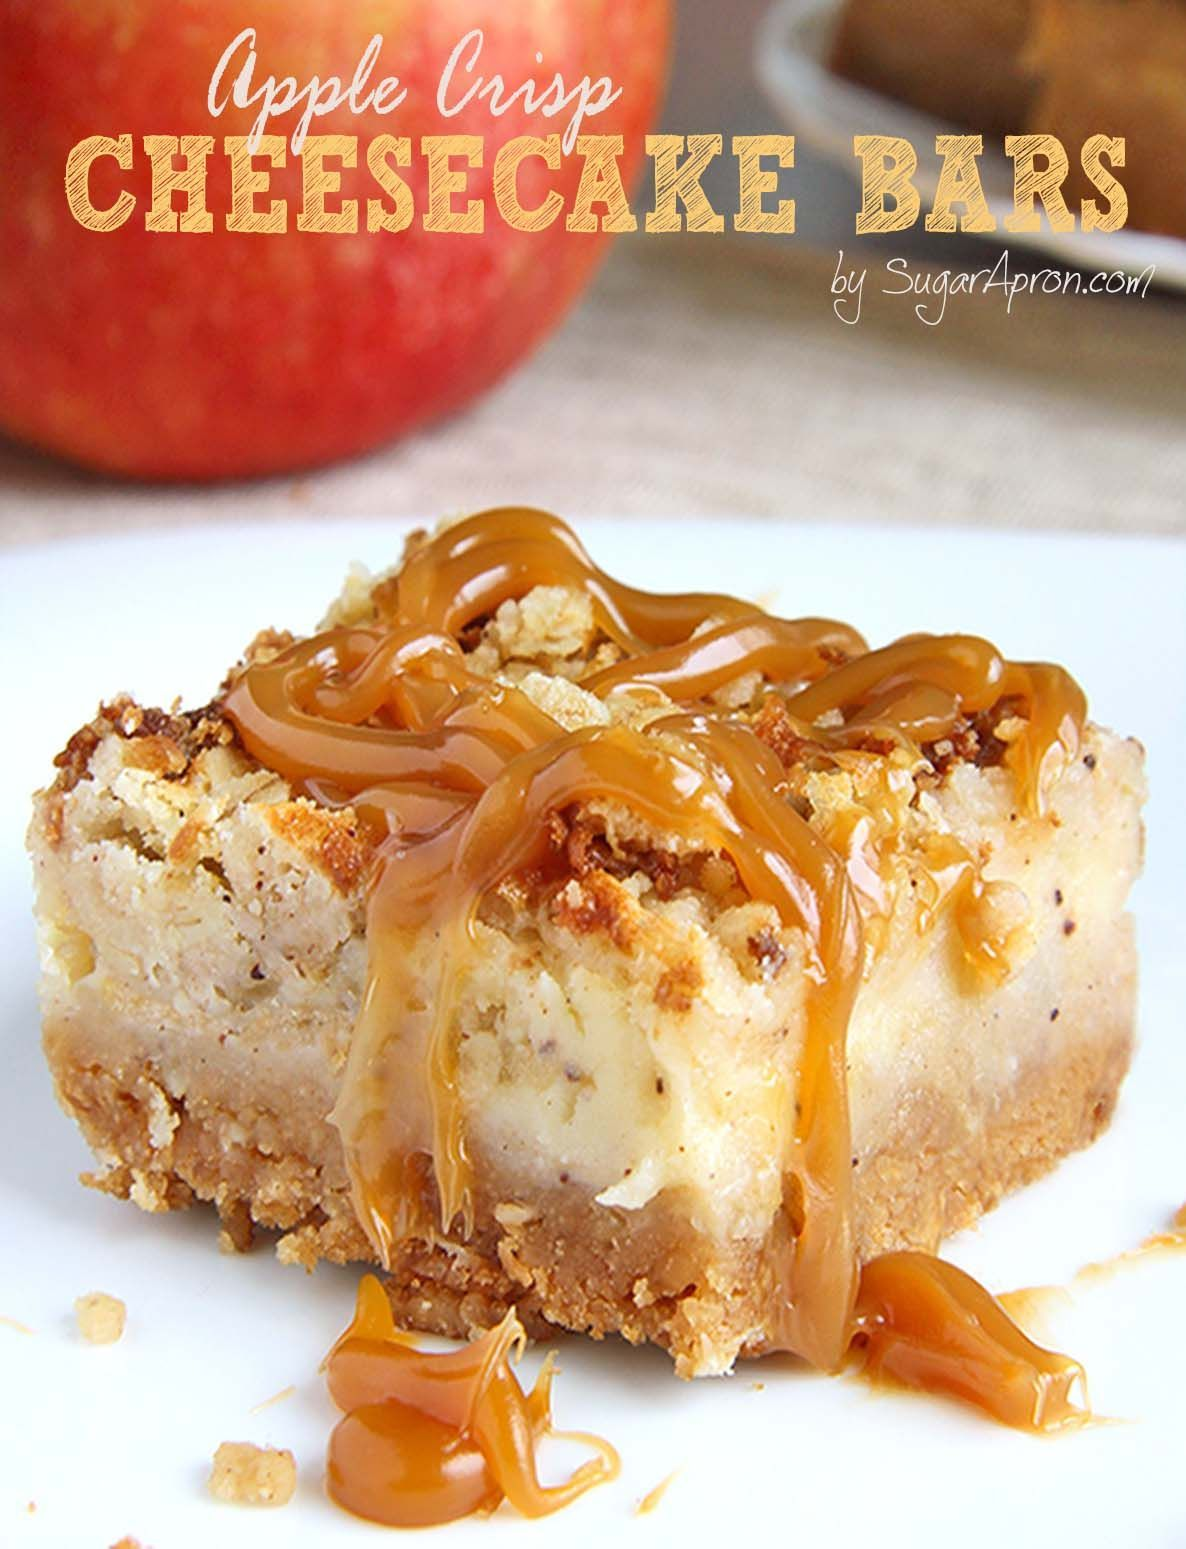 This is making me excited for holiday baking! All of these Dessert Bar Recipes look so AMAZING! I don't know which ones I want to try first. #Bar #cheesecake bites easy #cheesecake bites keto #cheesecake bites mini #cheesecake bites no bake #cheesecake bites no bake easy #cheesecake bites recipes #Dessert #Recipes